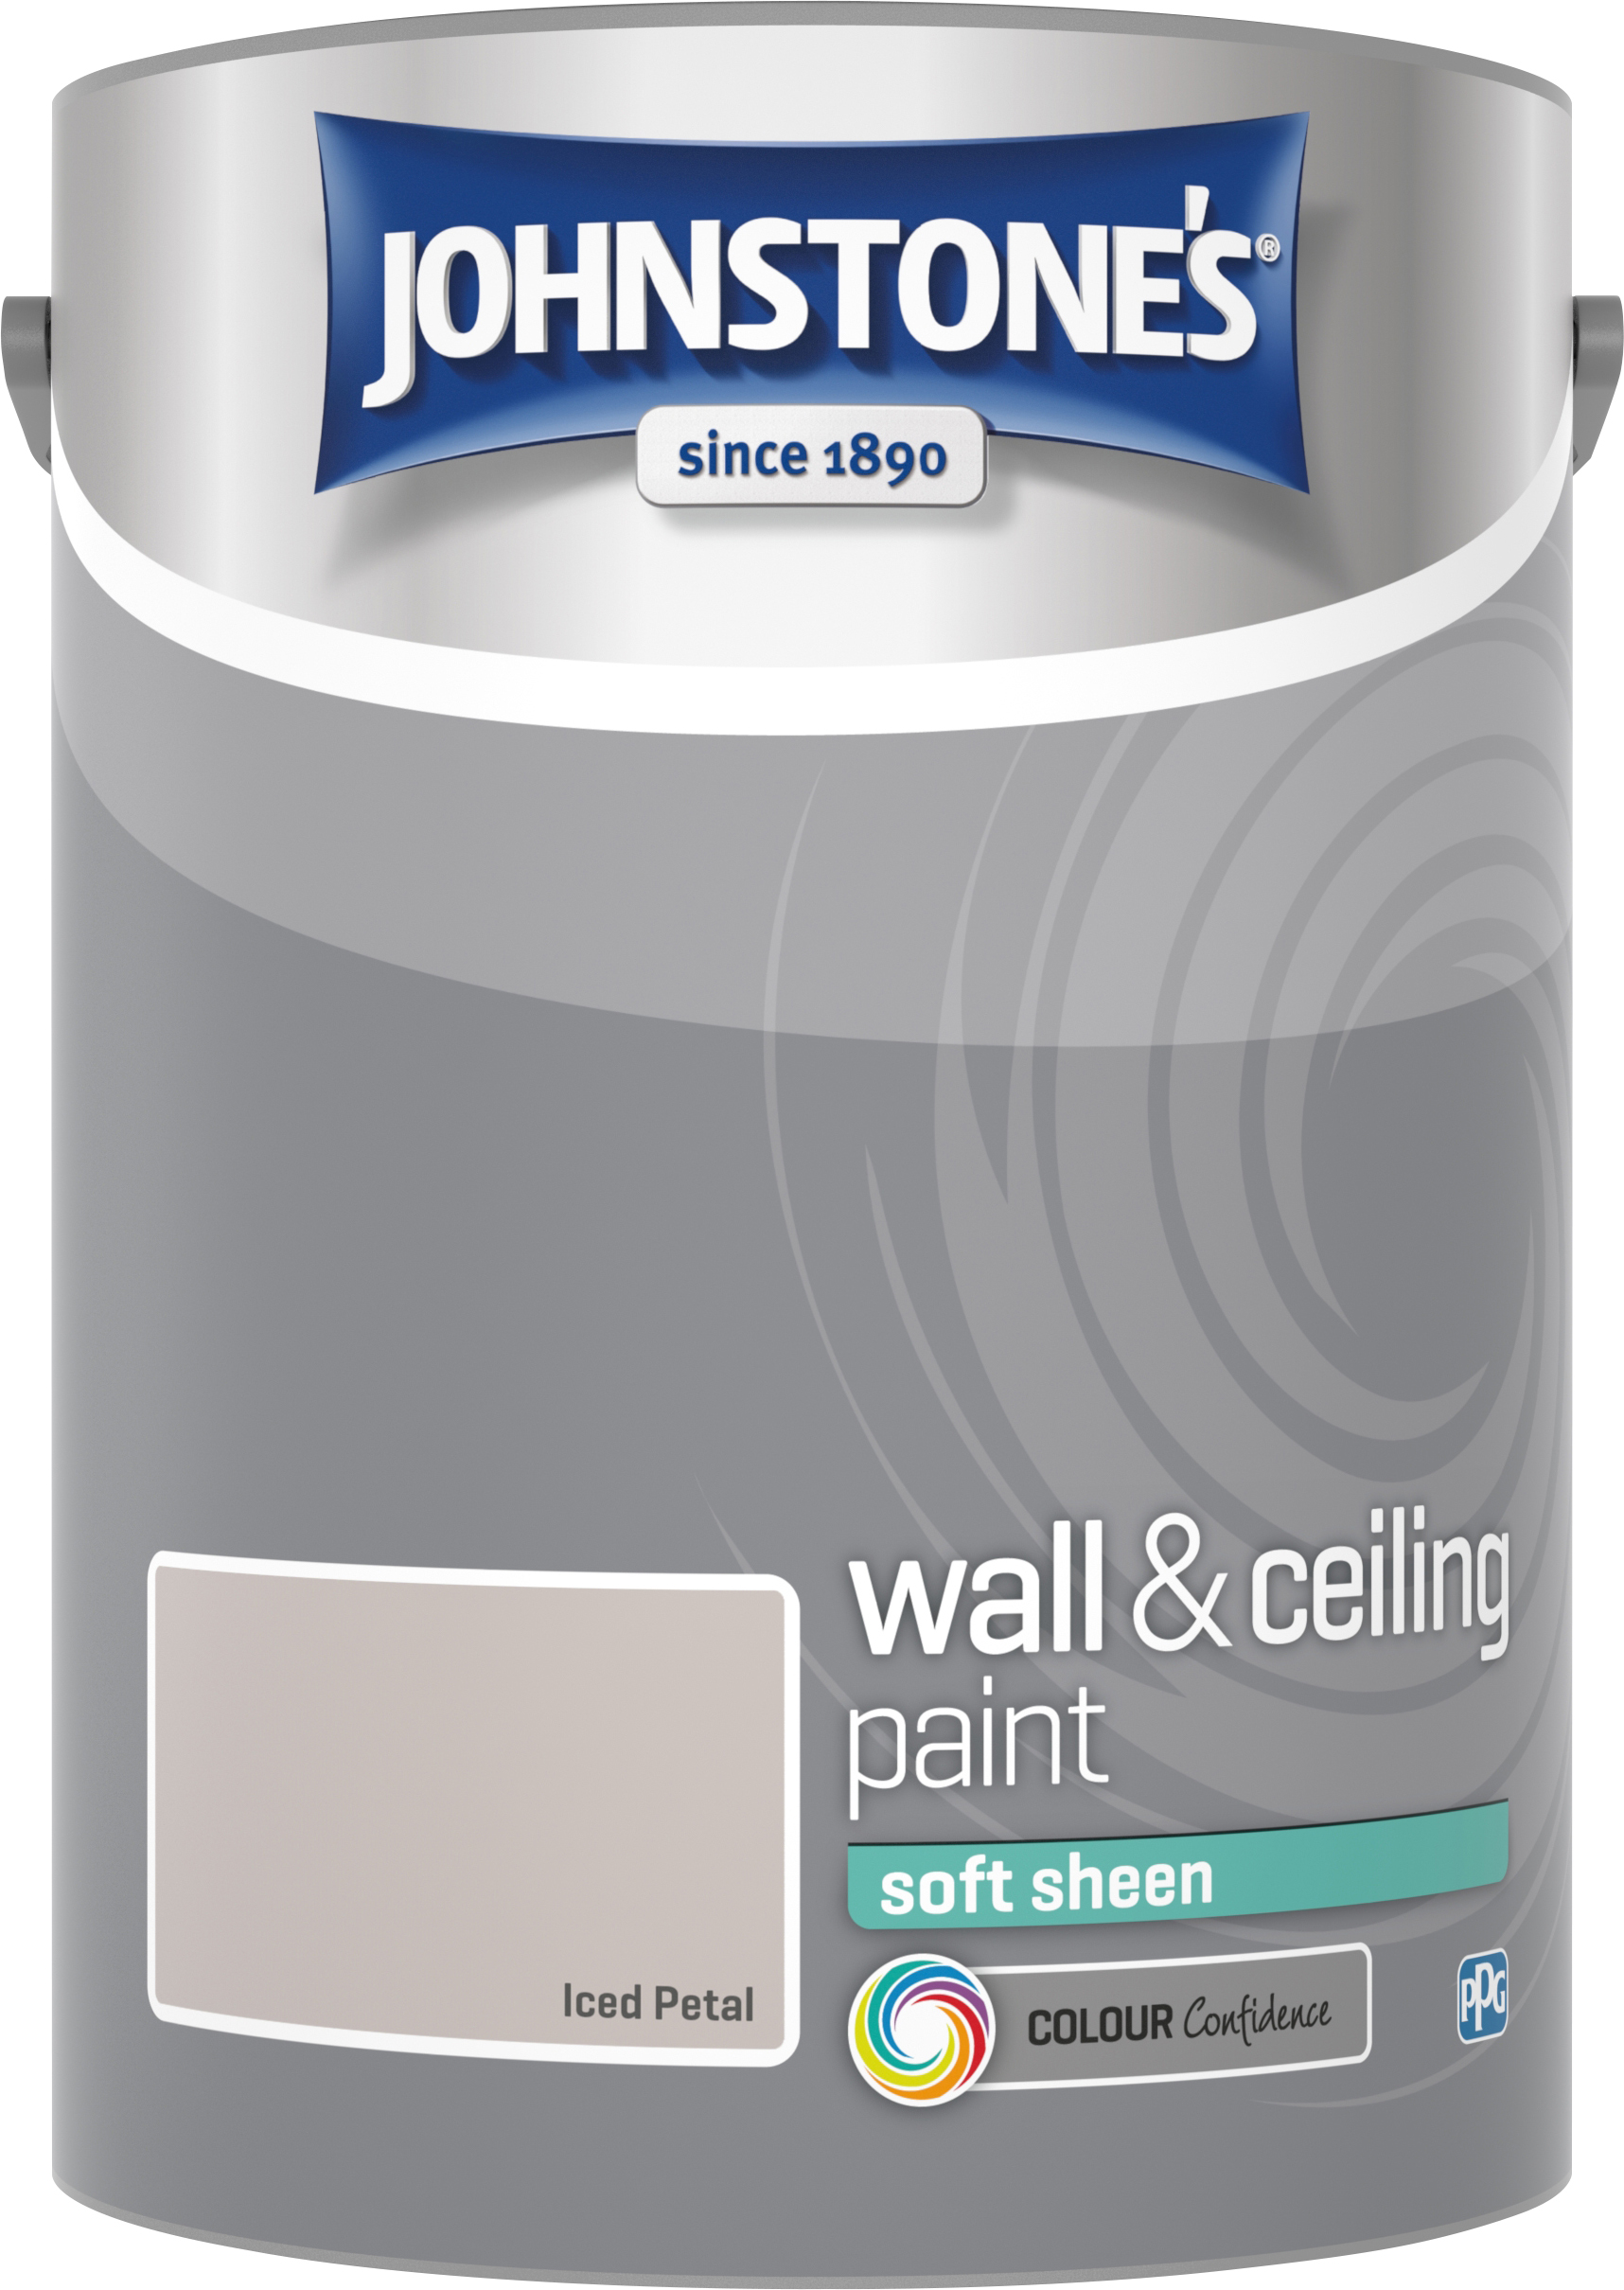 Johnstone's 304194 5 Litre Soft Sheen Emulsion Paint - Iced Petal